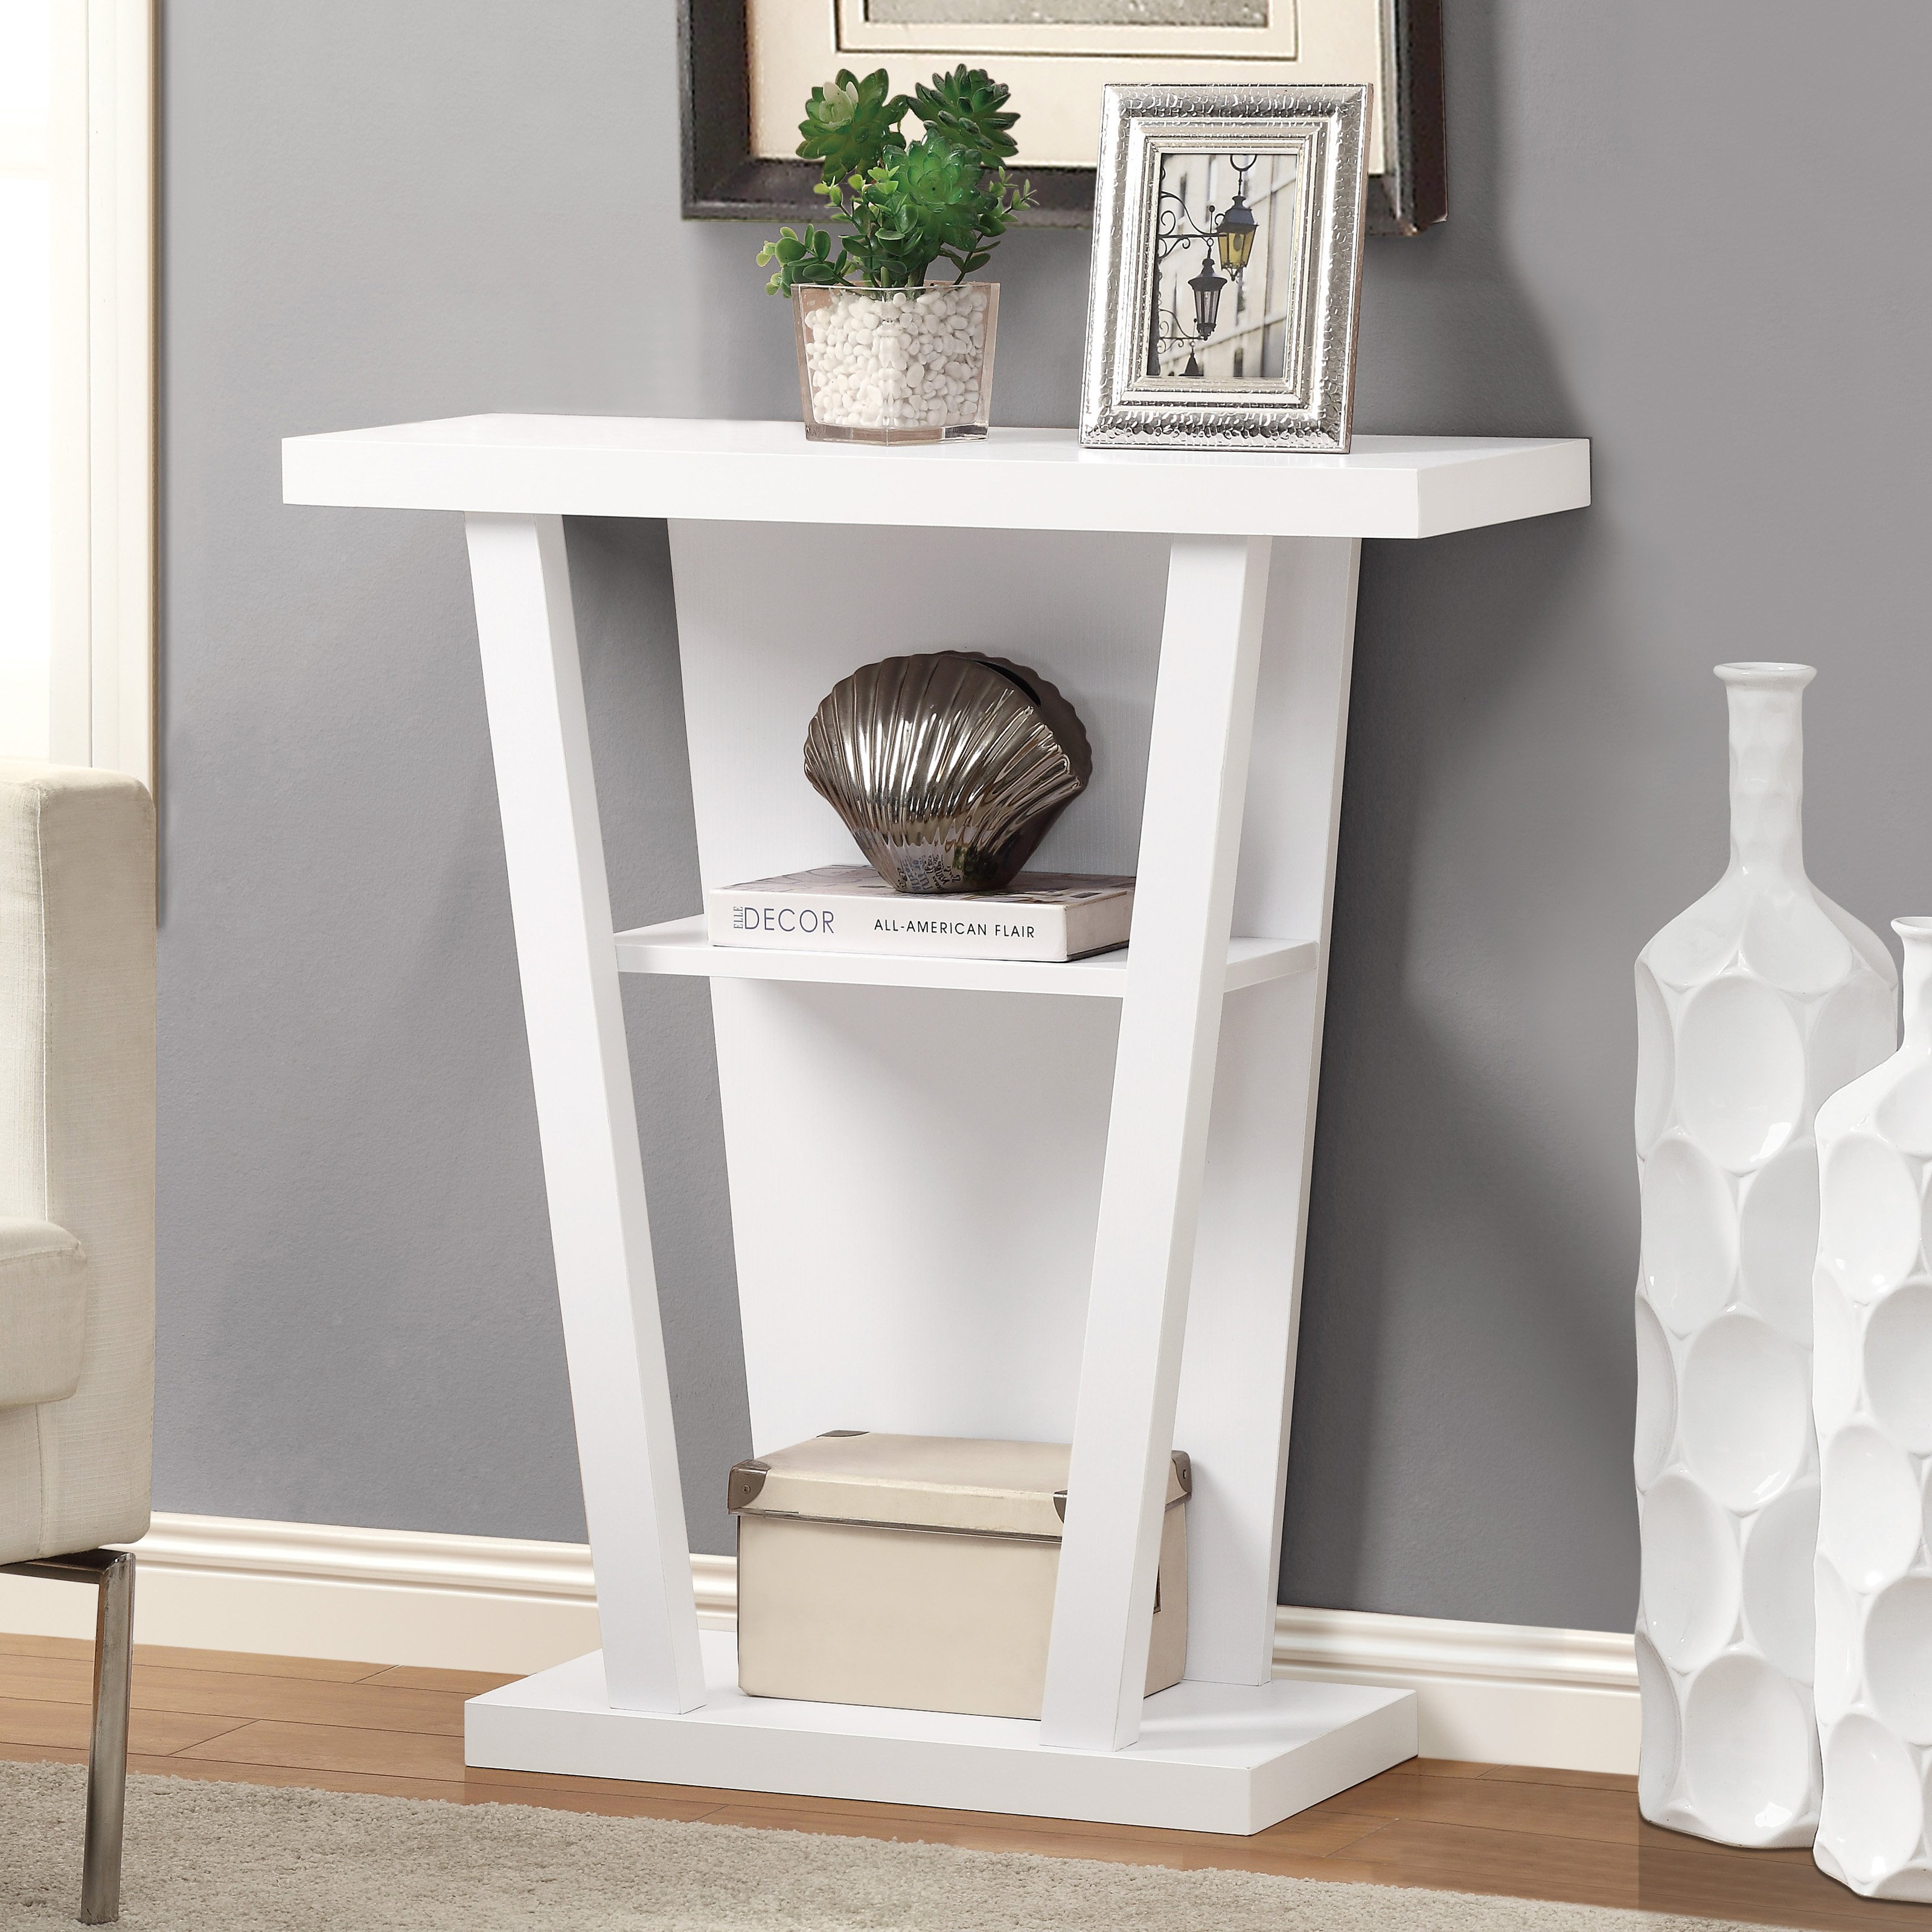 monarch hall console accent table white master small oak side tables for living room west elm planner standing wine rack teal chest three drawer end dale tiffany wisteria lamp